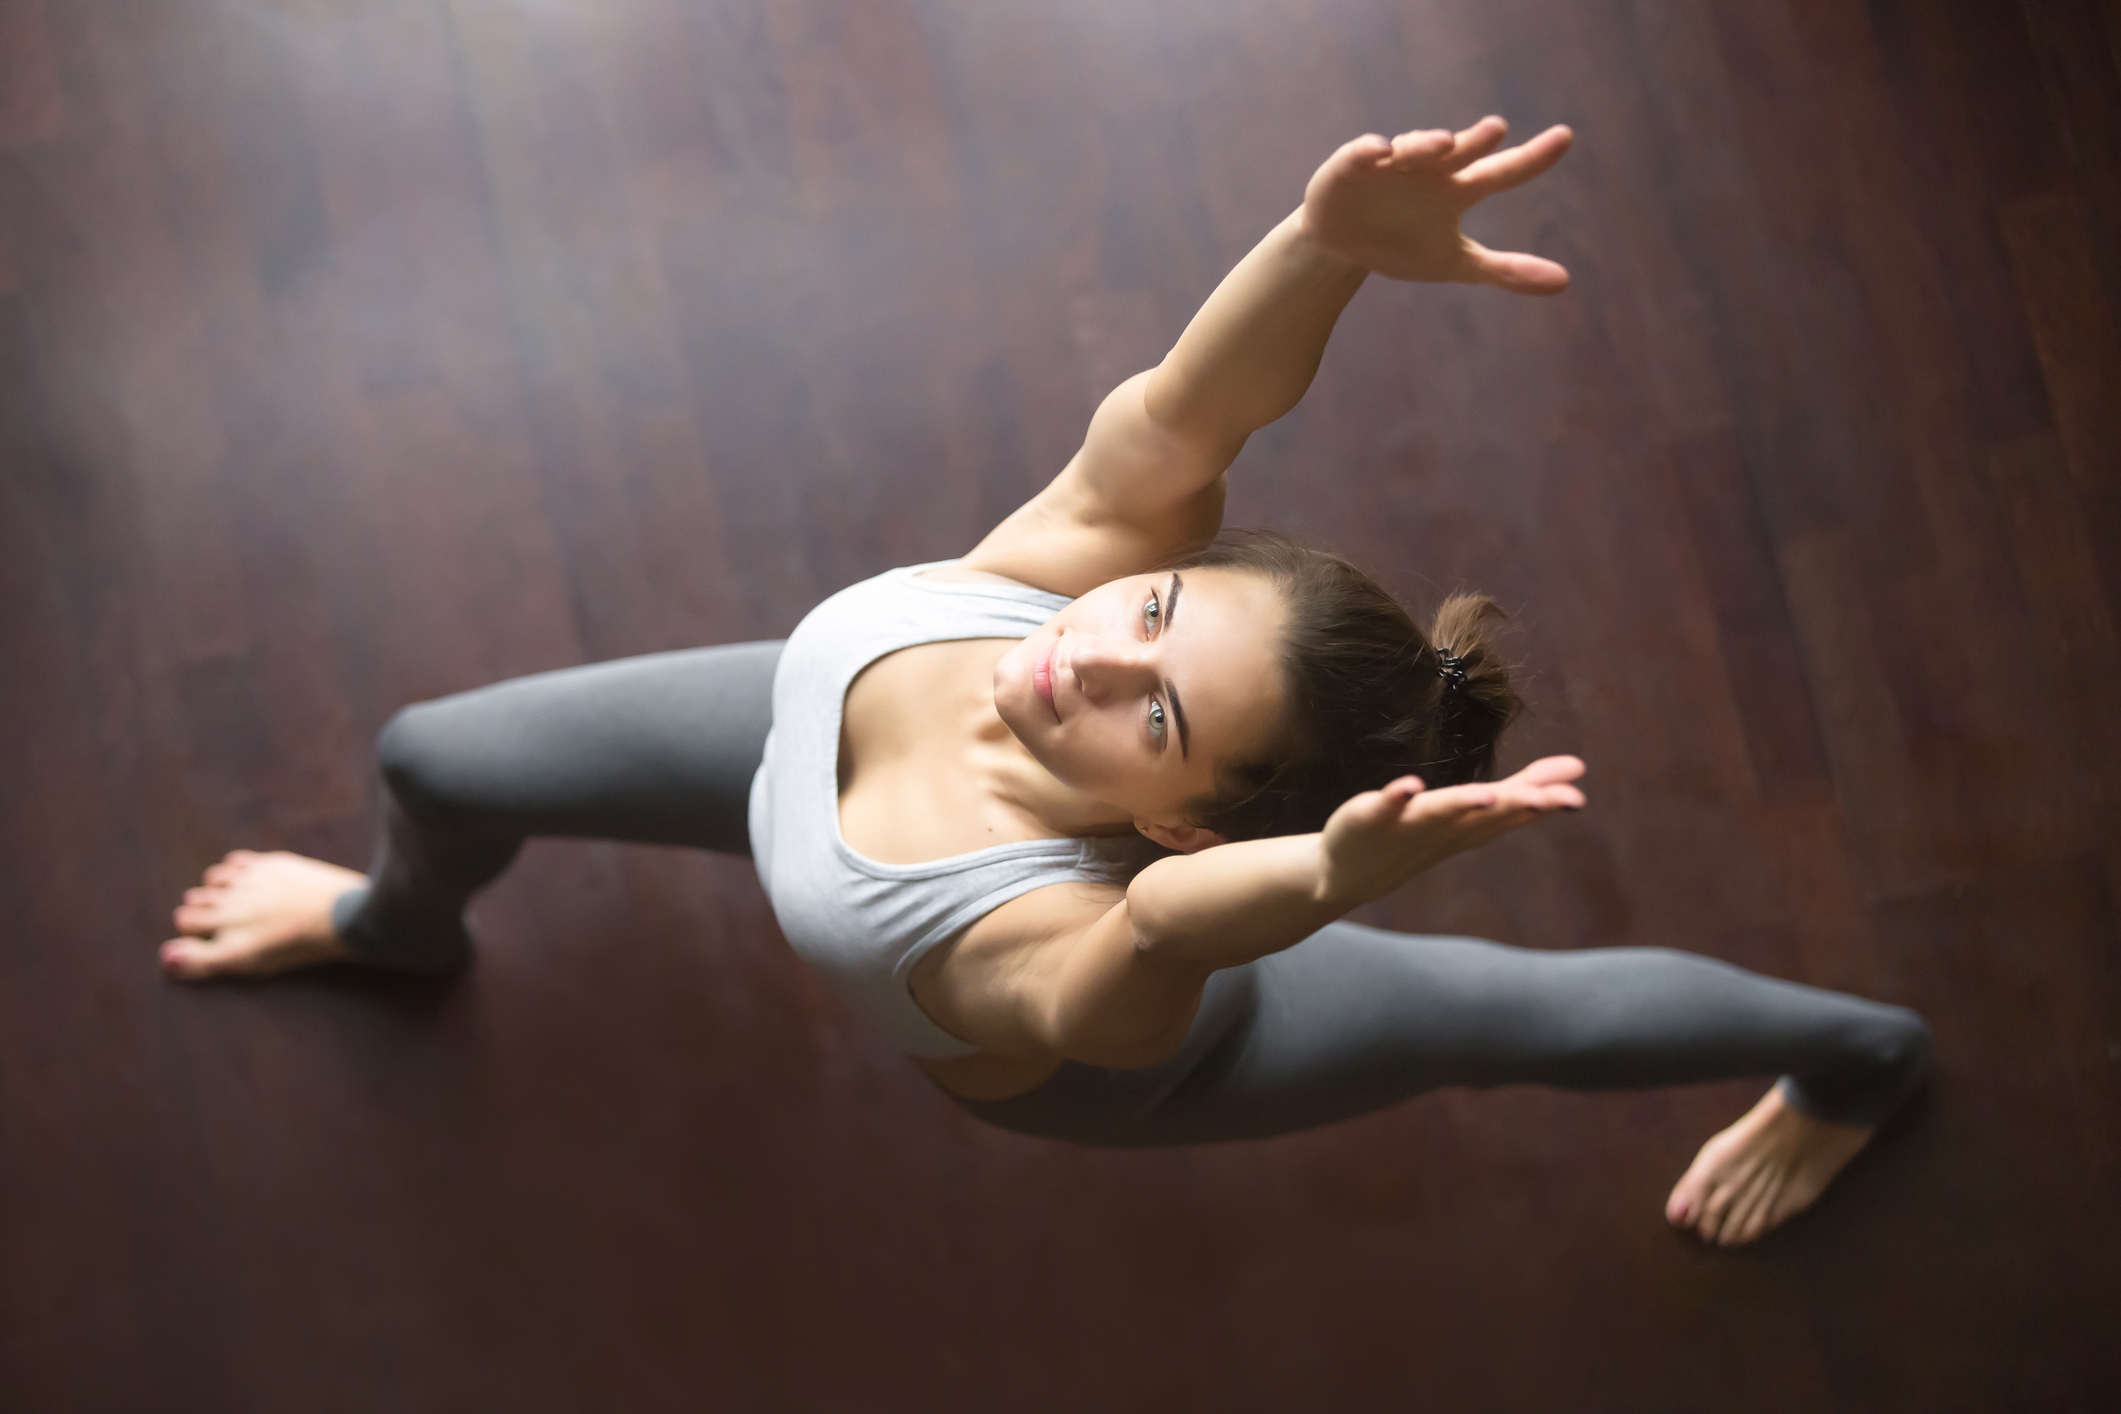 You Can Do Yoga A Simple 15 Minute Morning Routine Harvard Health Blog Harvard Health Publishing